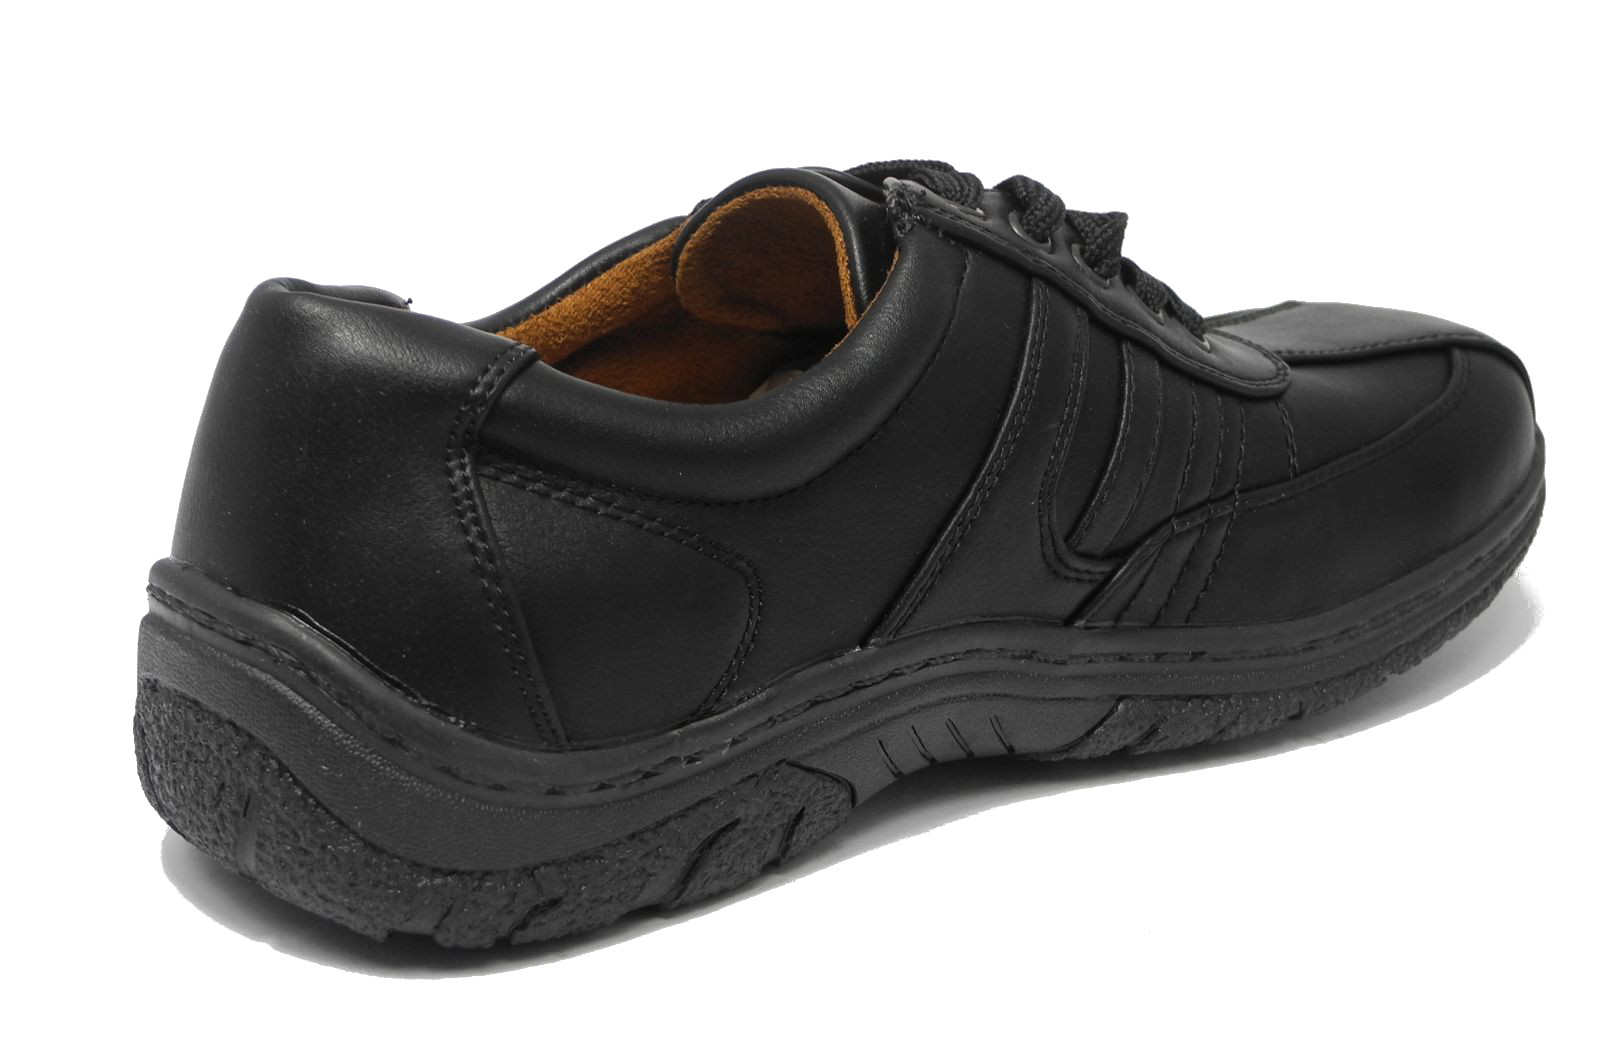 mens black leather look wide cushion comfort arch support